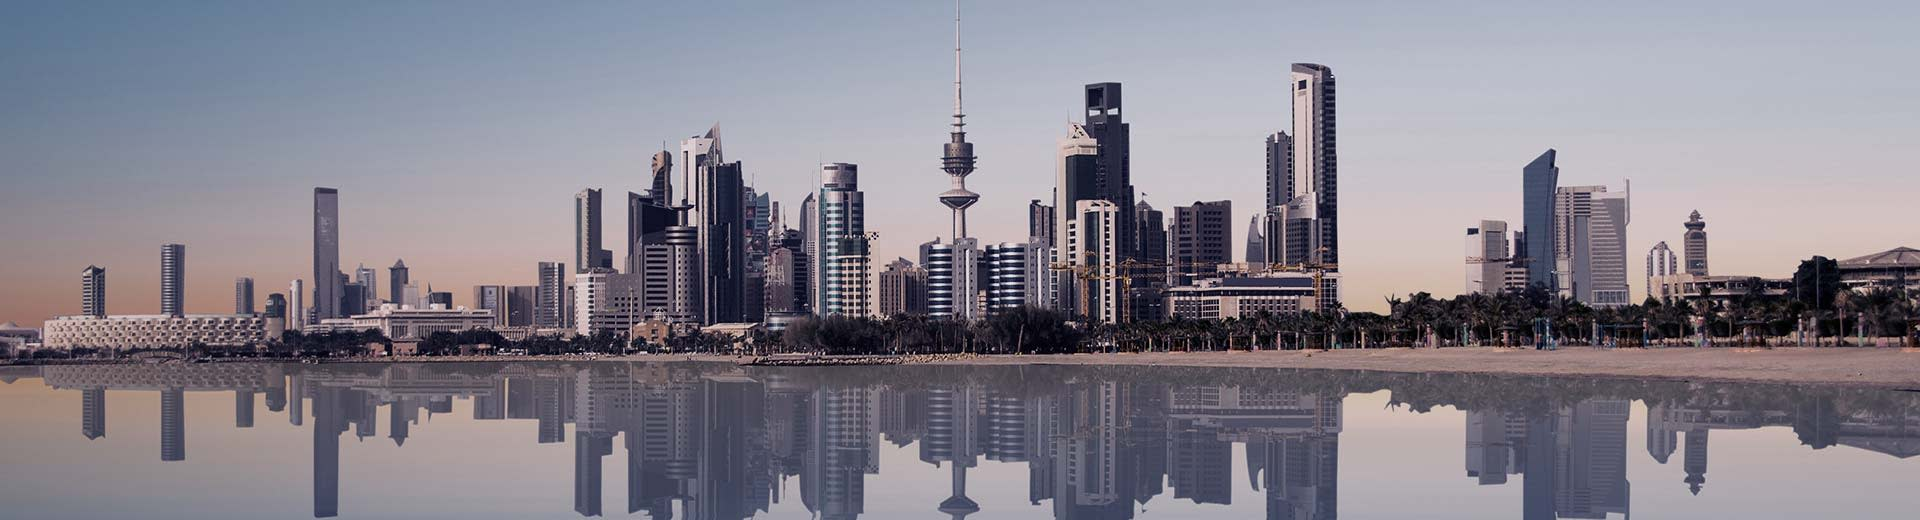 The modern and daunting skyline of Kuwait City